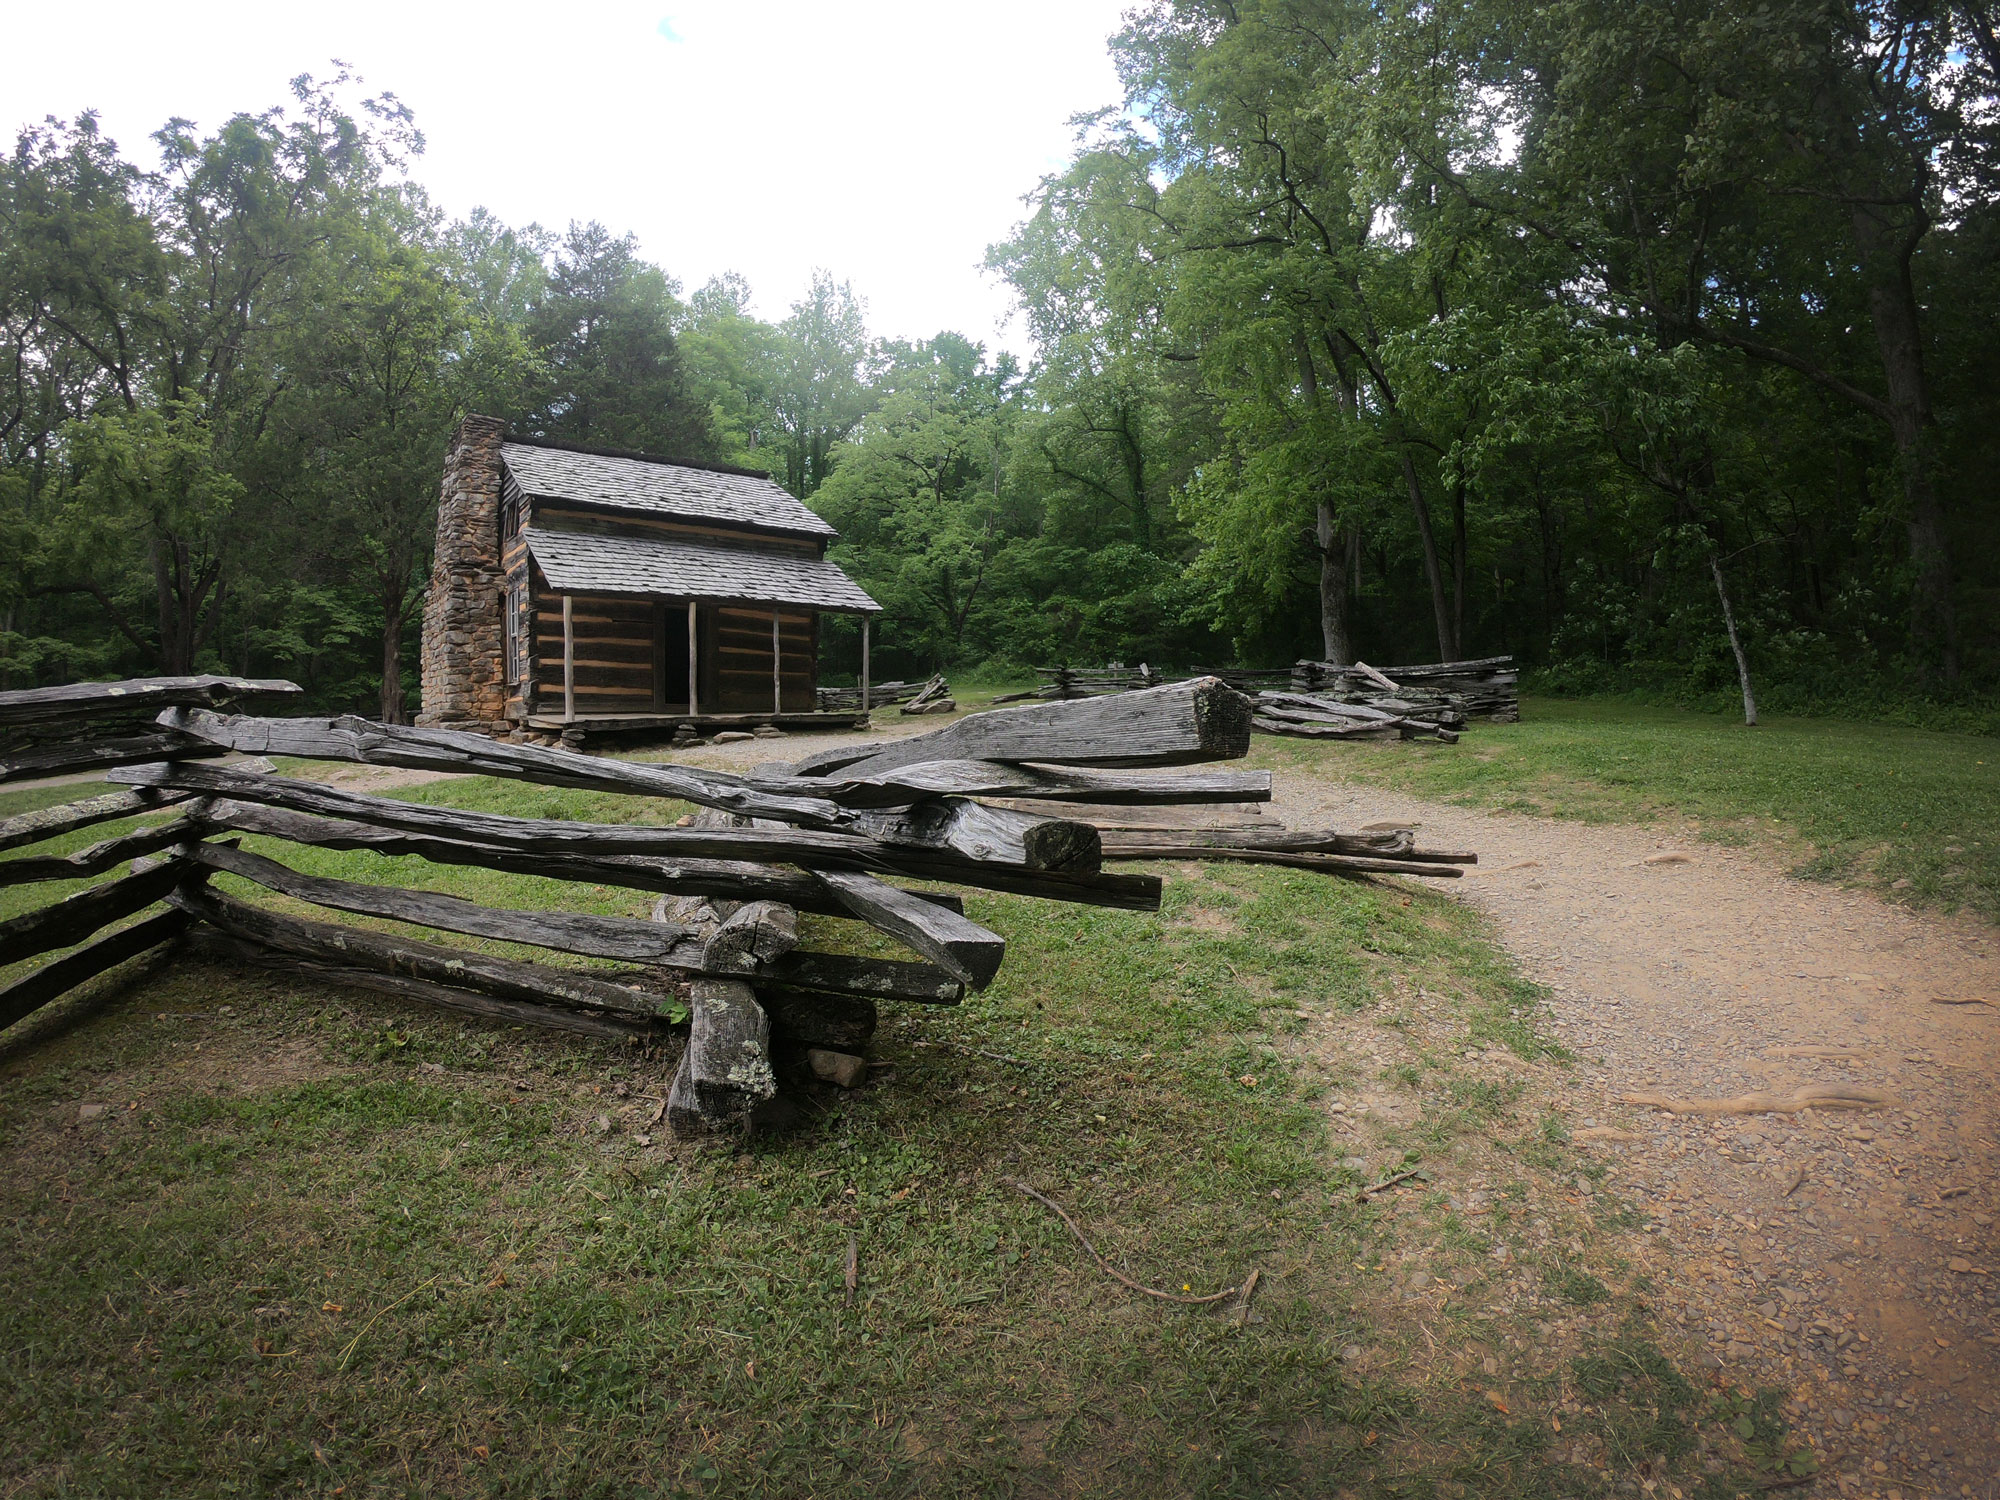 John Oliver Place cabin with zig zag fence in Cades Cove, Great Smoky Mountains National Park, Tennessee